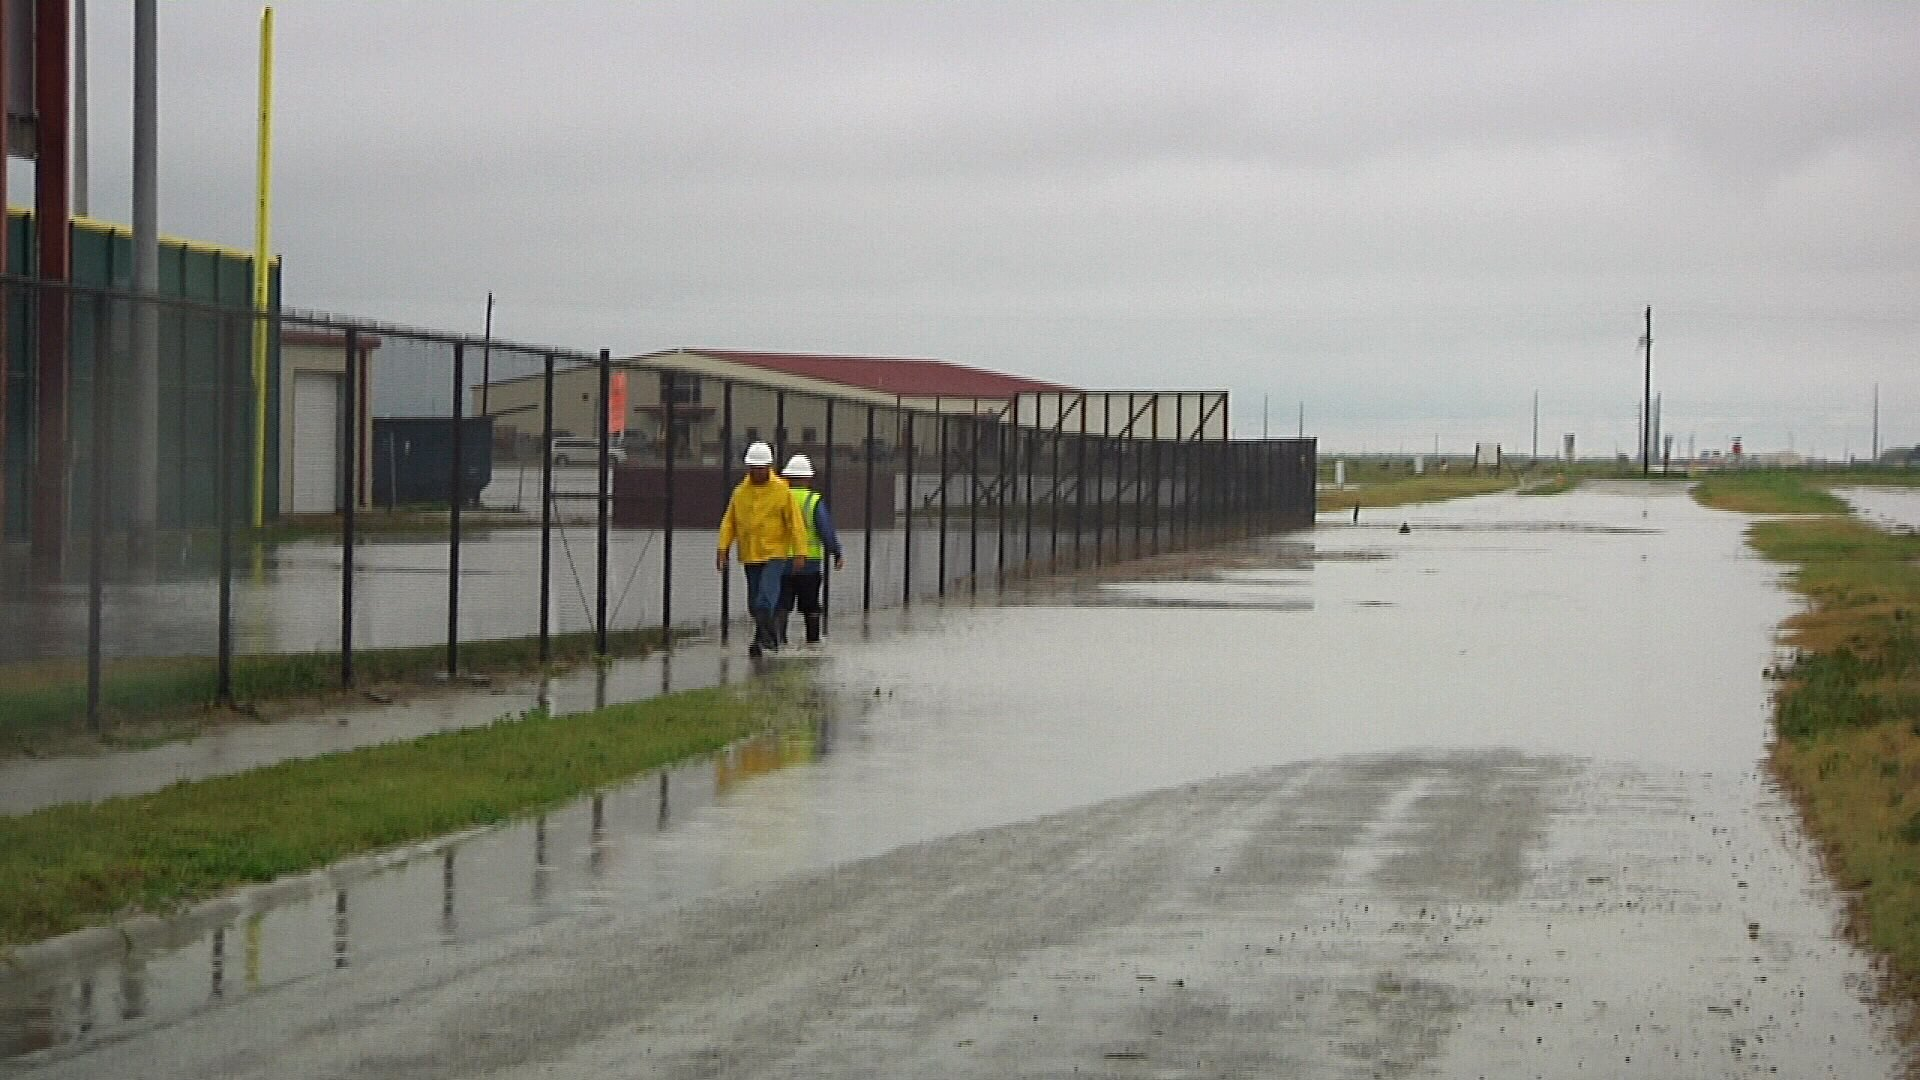 tuloso midway isd delays classes due to flooding com a photo from wednesday outside the school